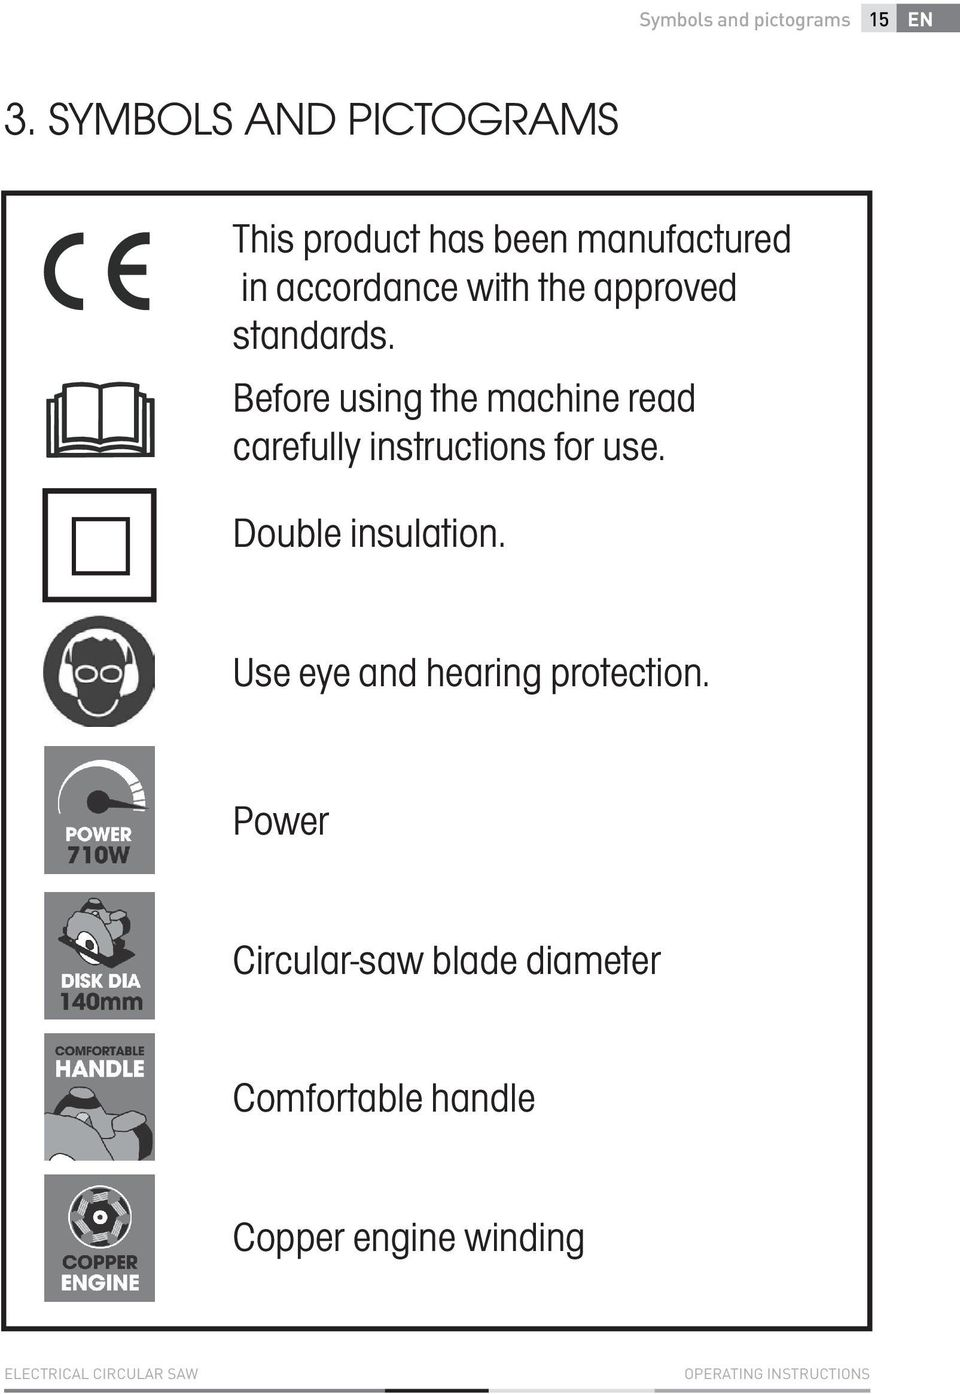 standards. Before using the machine read carefully instructions for use. Double insulation.